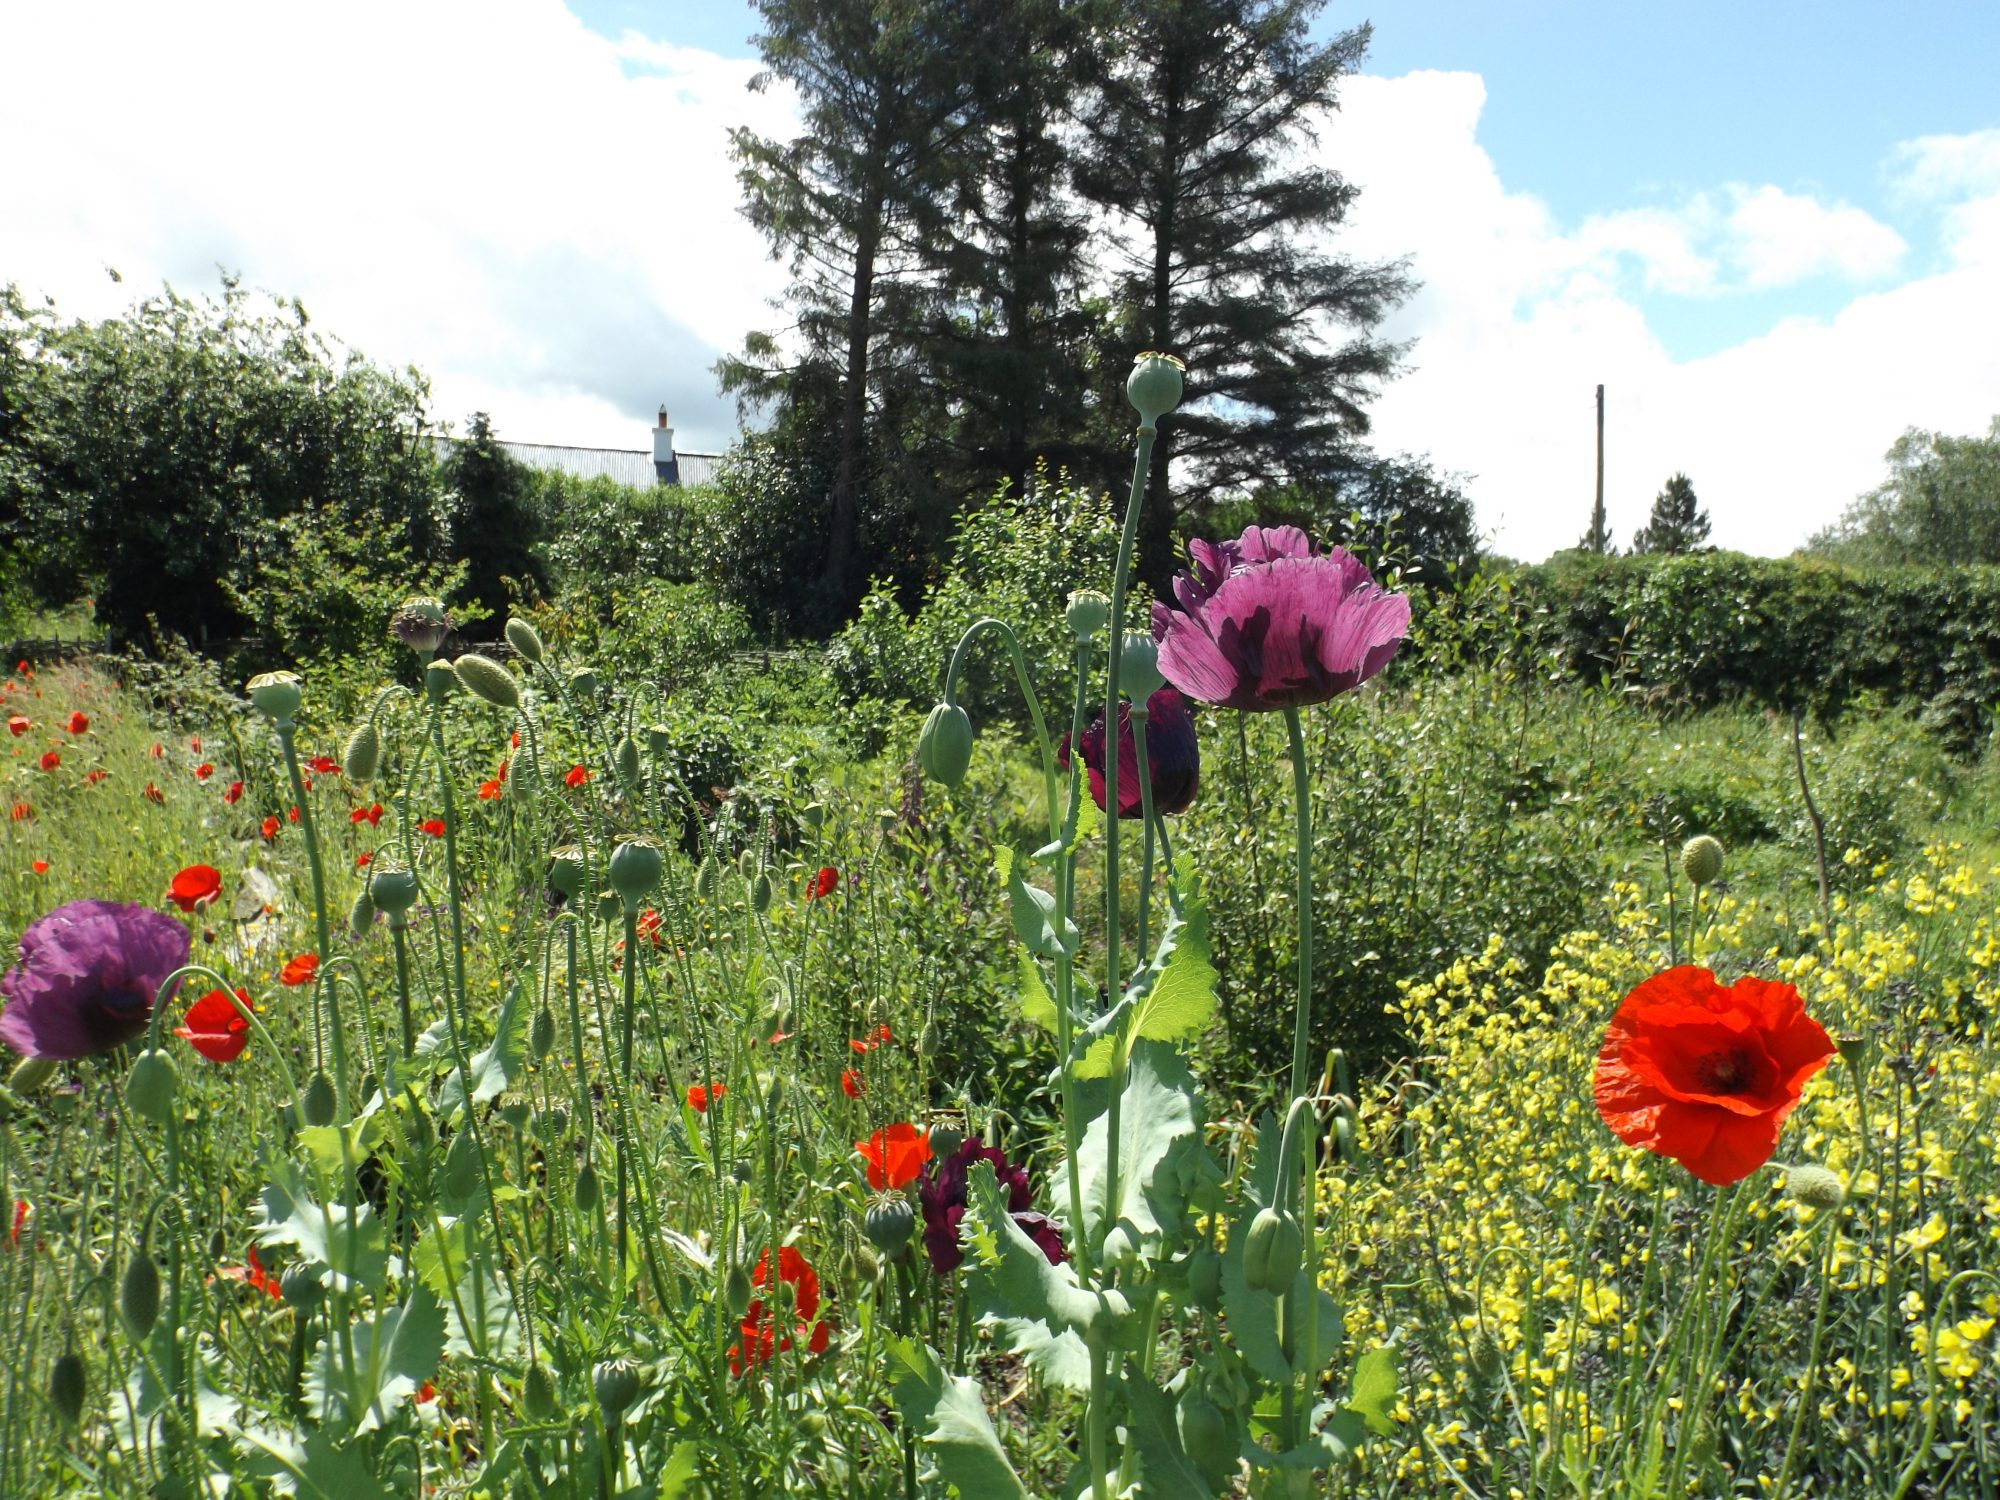 The gardens at Lackan Cottage Farm are a haven for wildlife